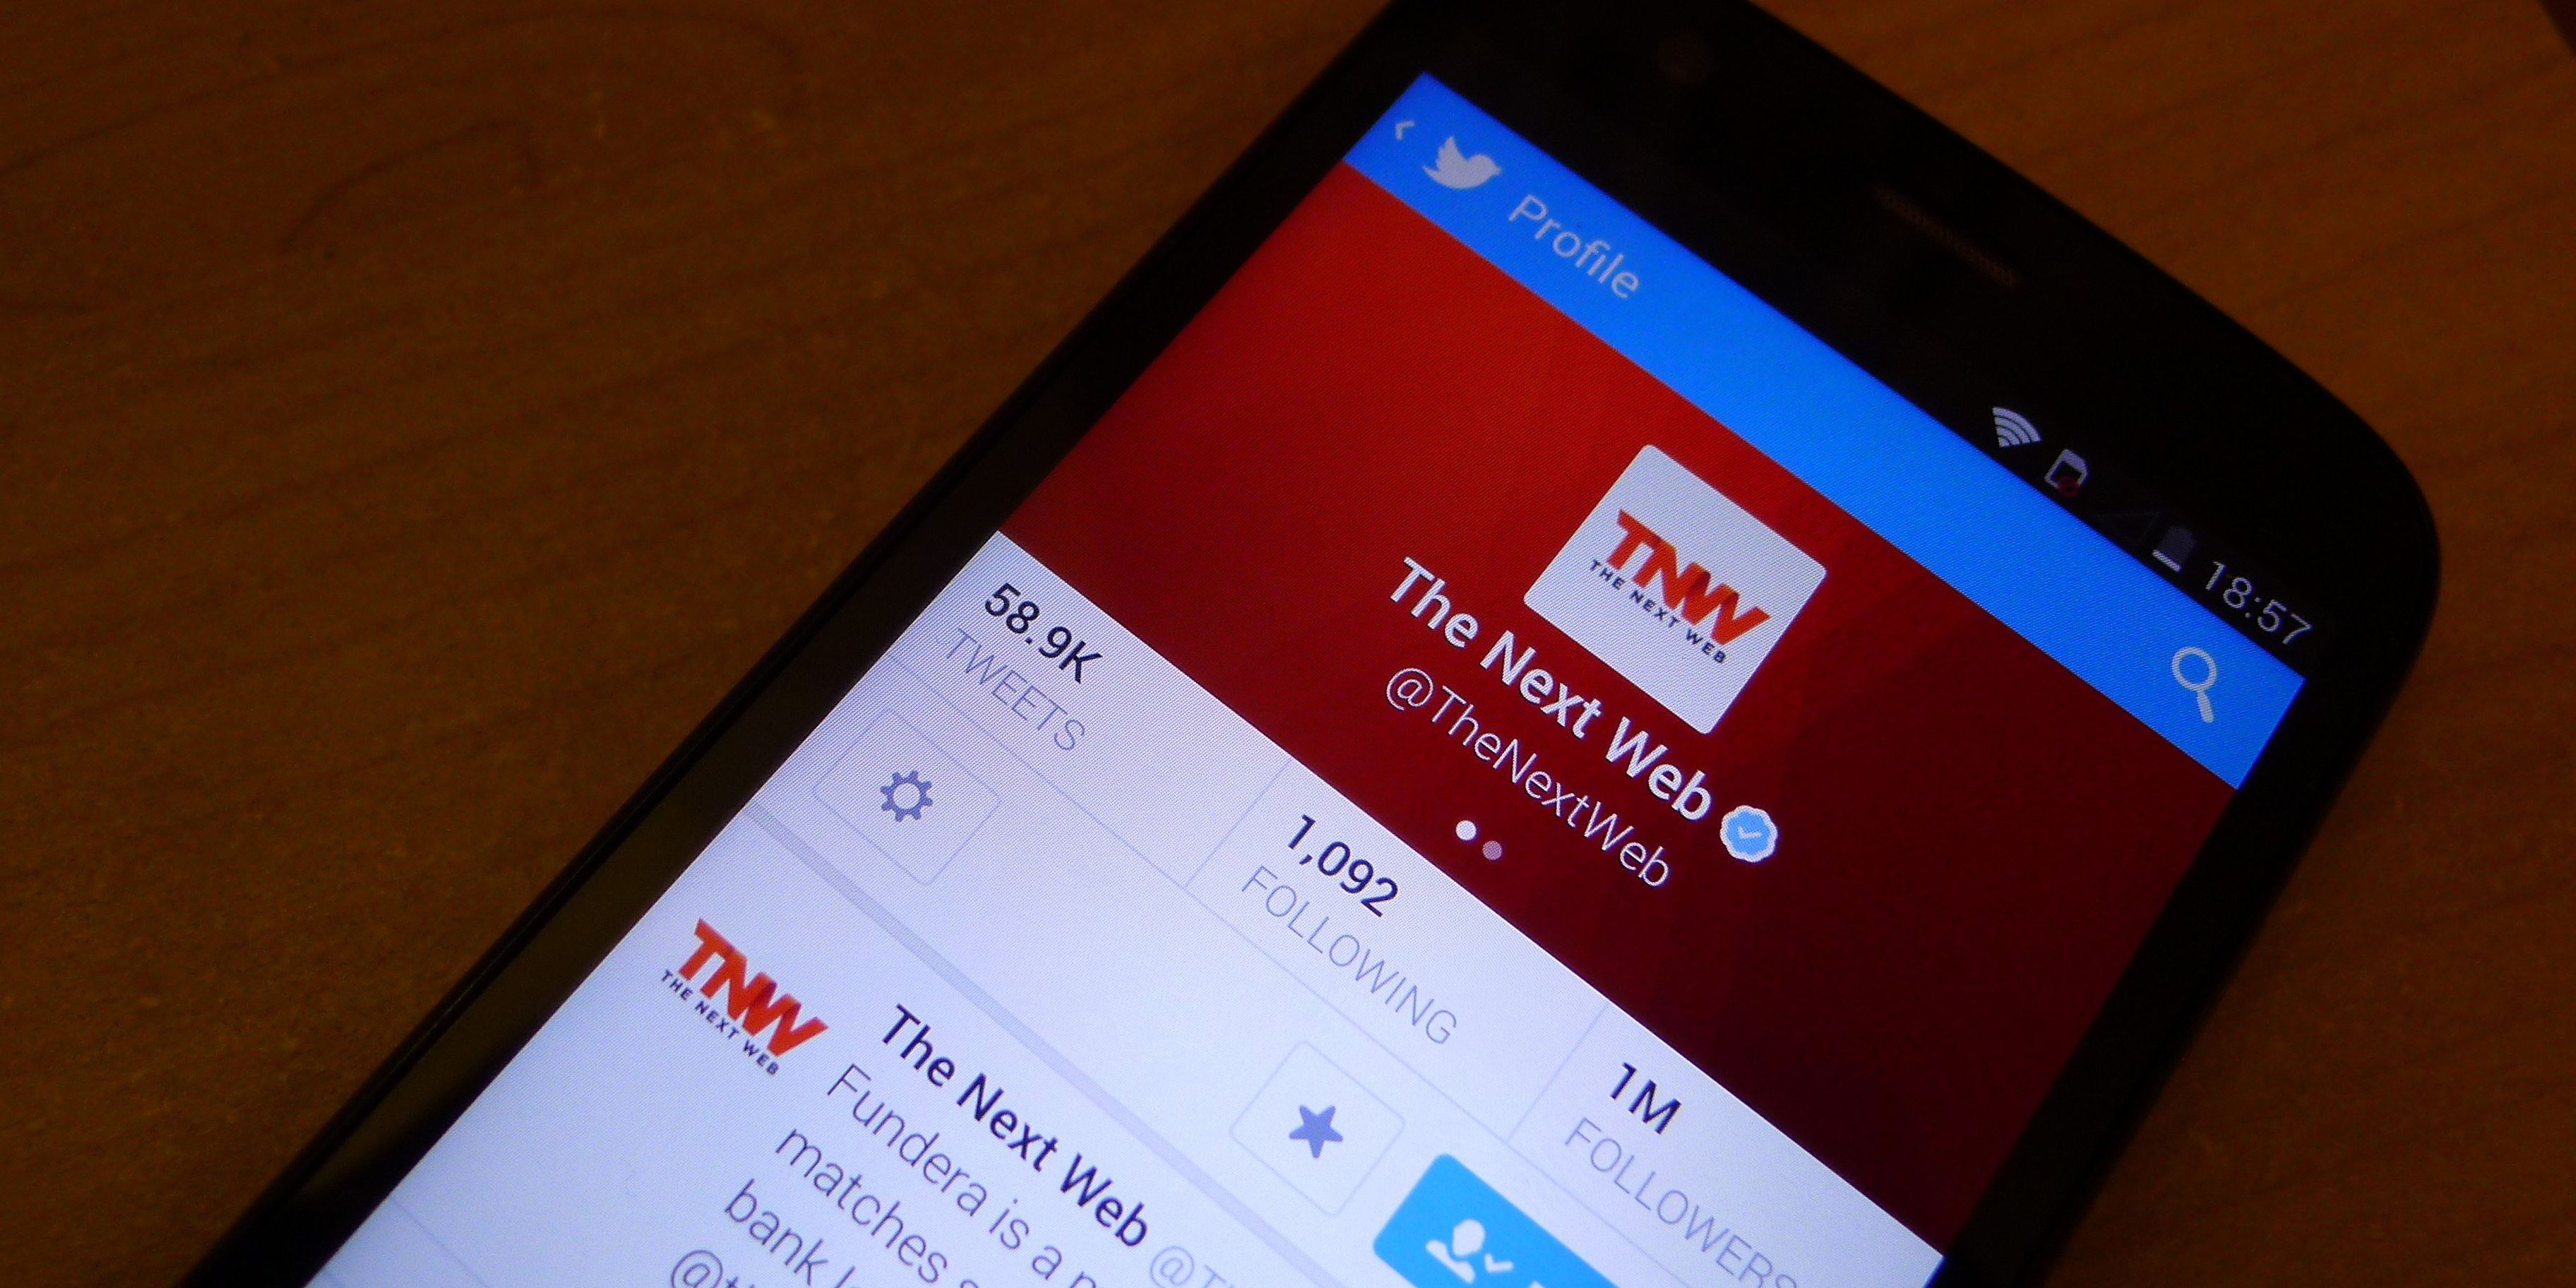 Twitter Acquires Mobile Ad-Buying Platform TapCommerce